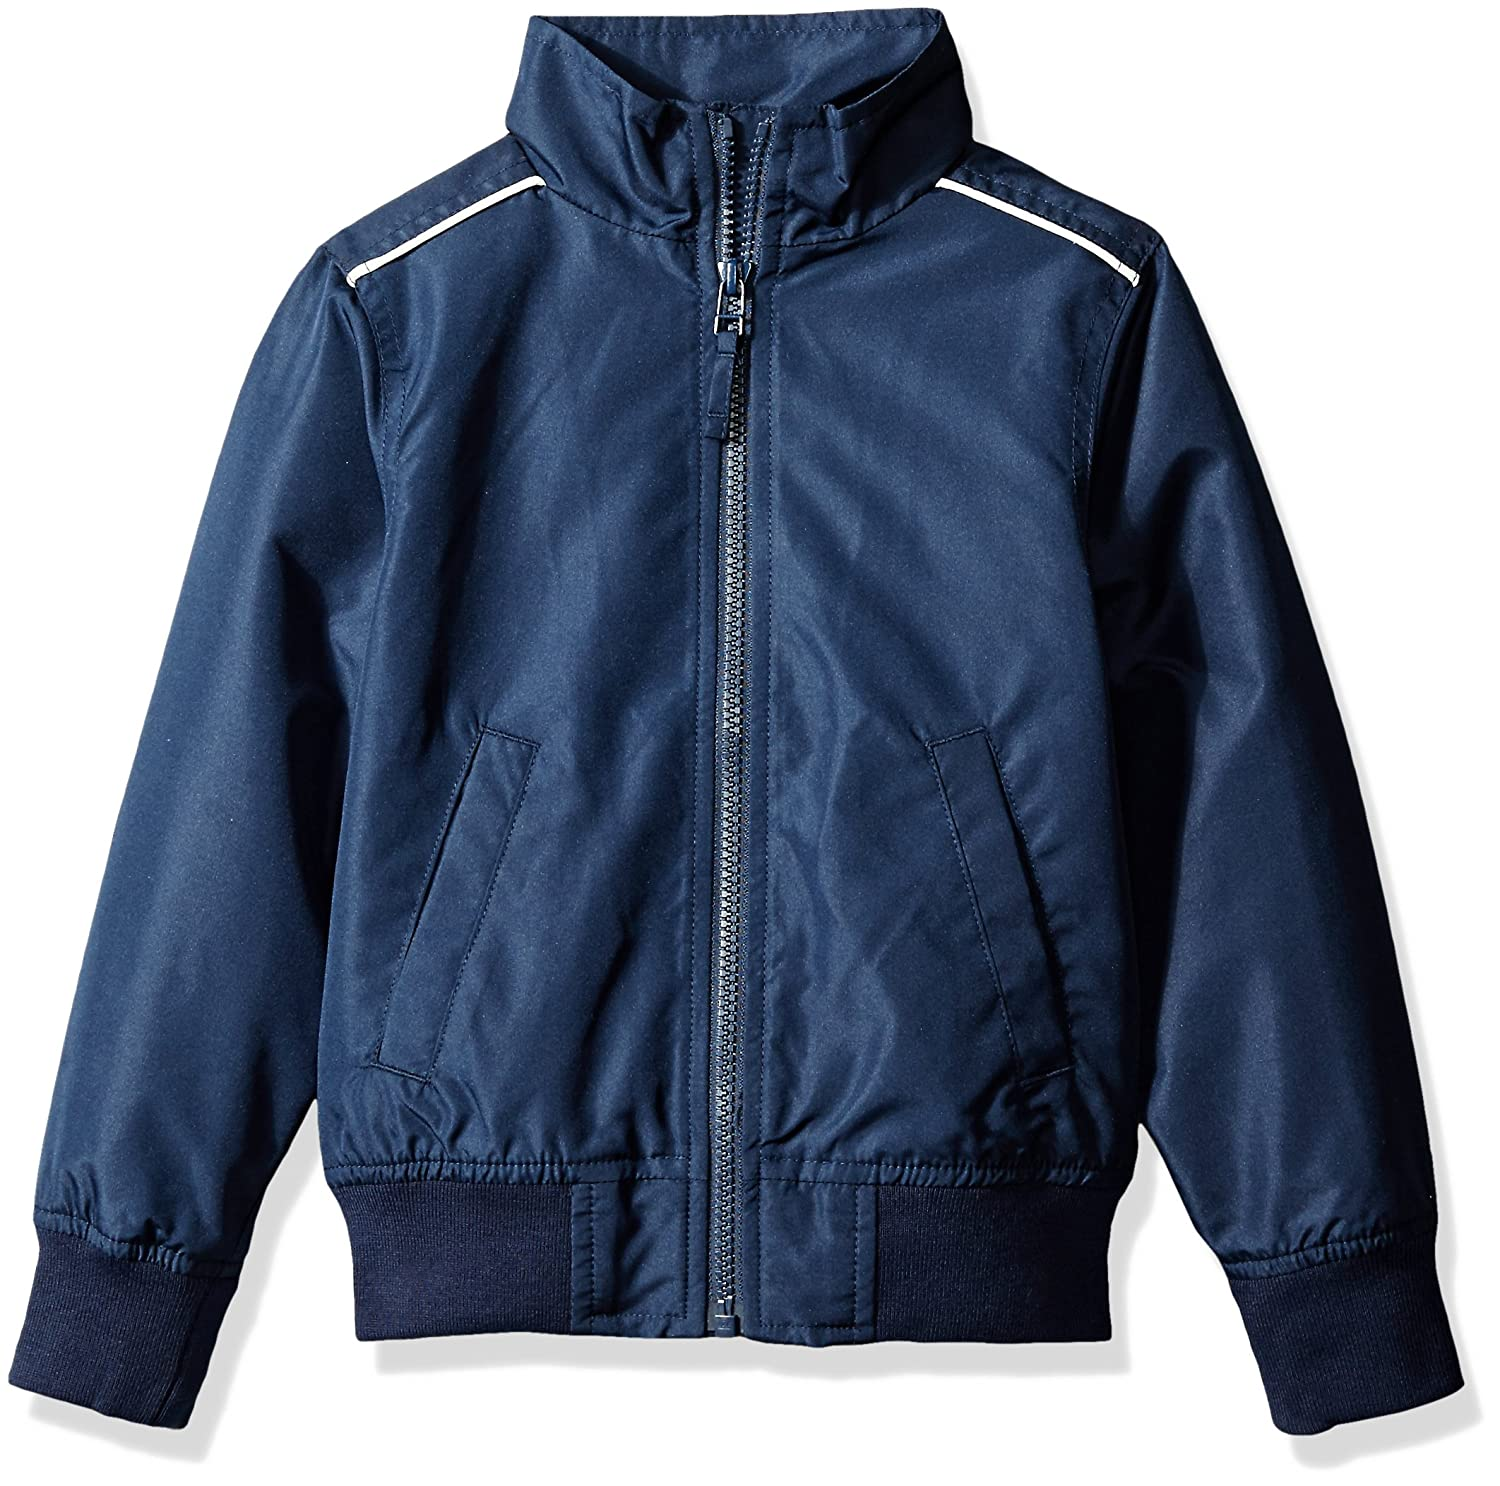 The Children's Place Boys' Uniform Jacket 2060691 2060692